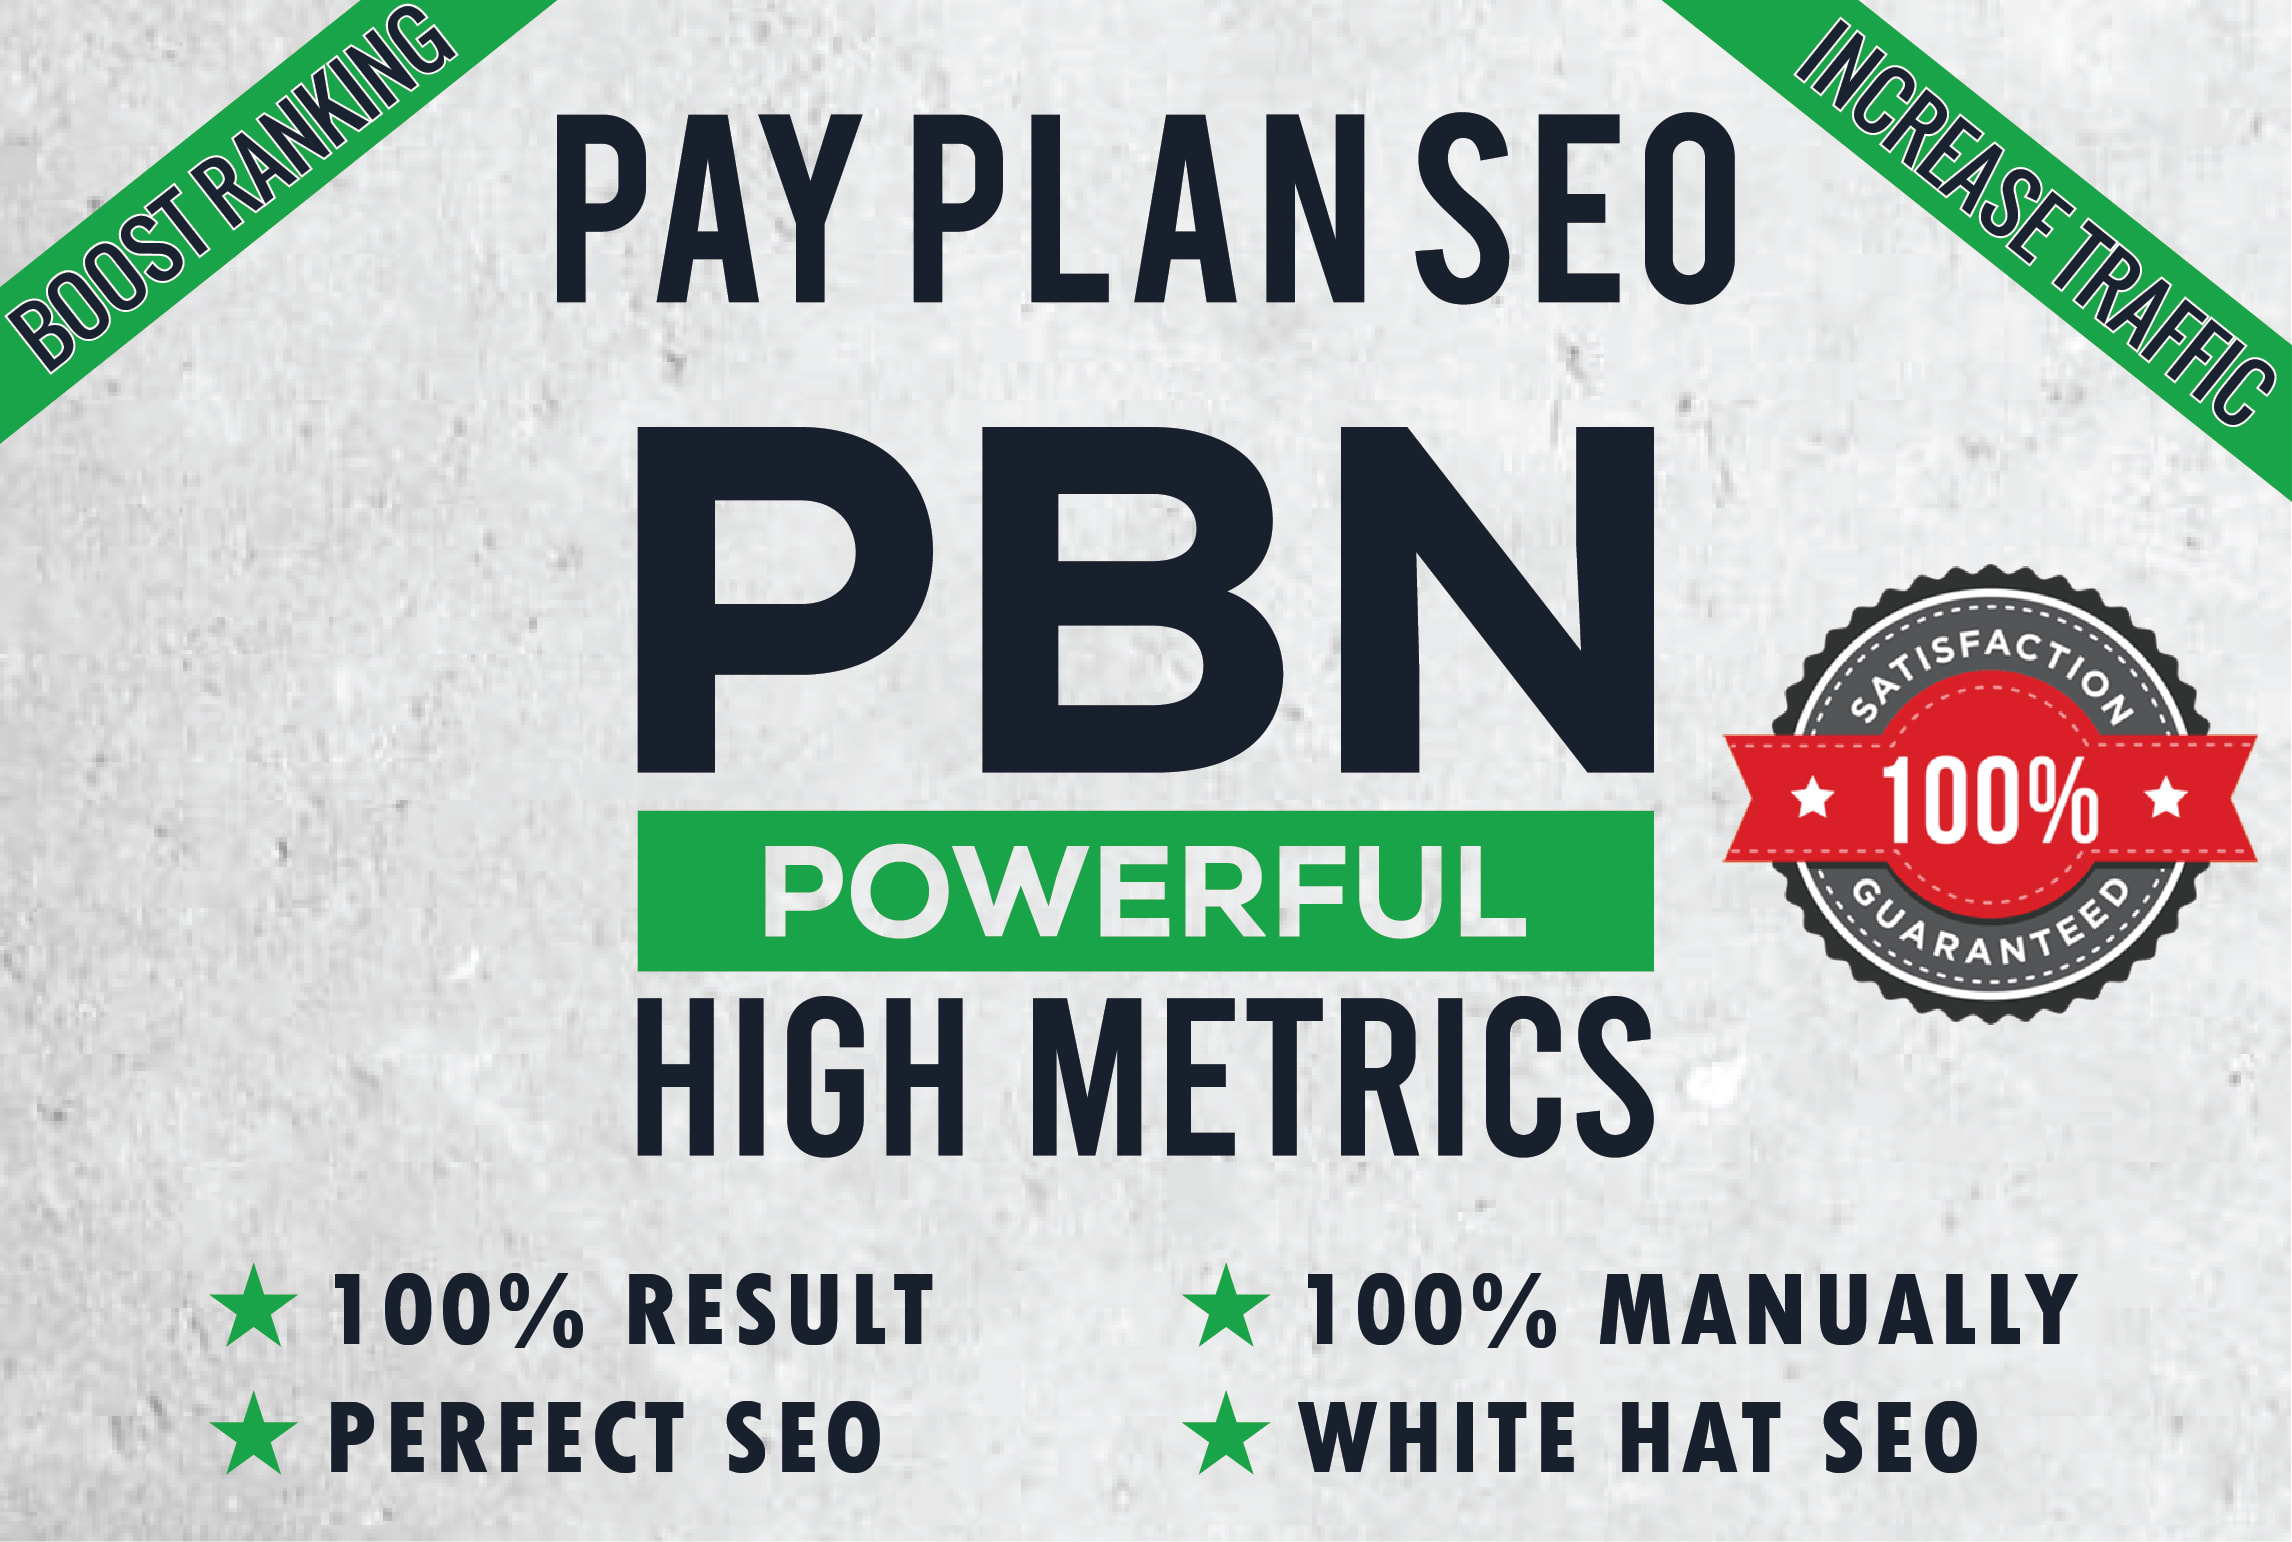 Provide 100 homepage seo pbn backlinks fast daliviry